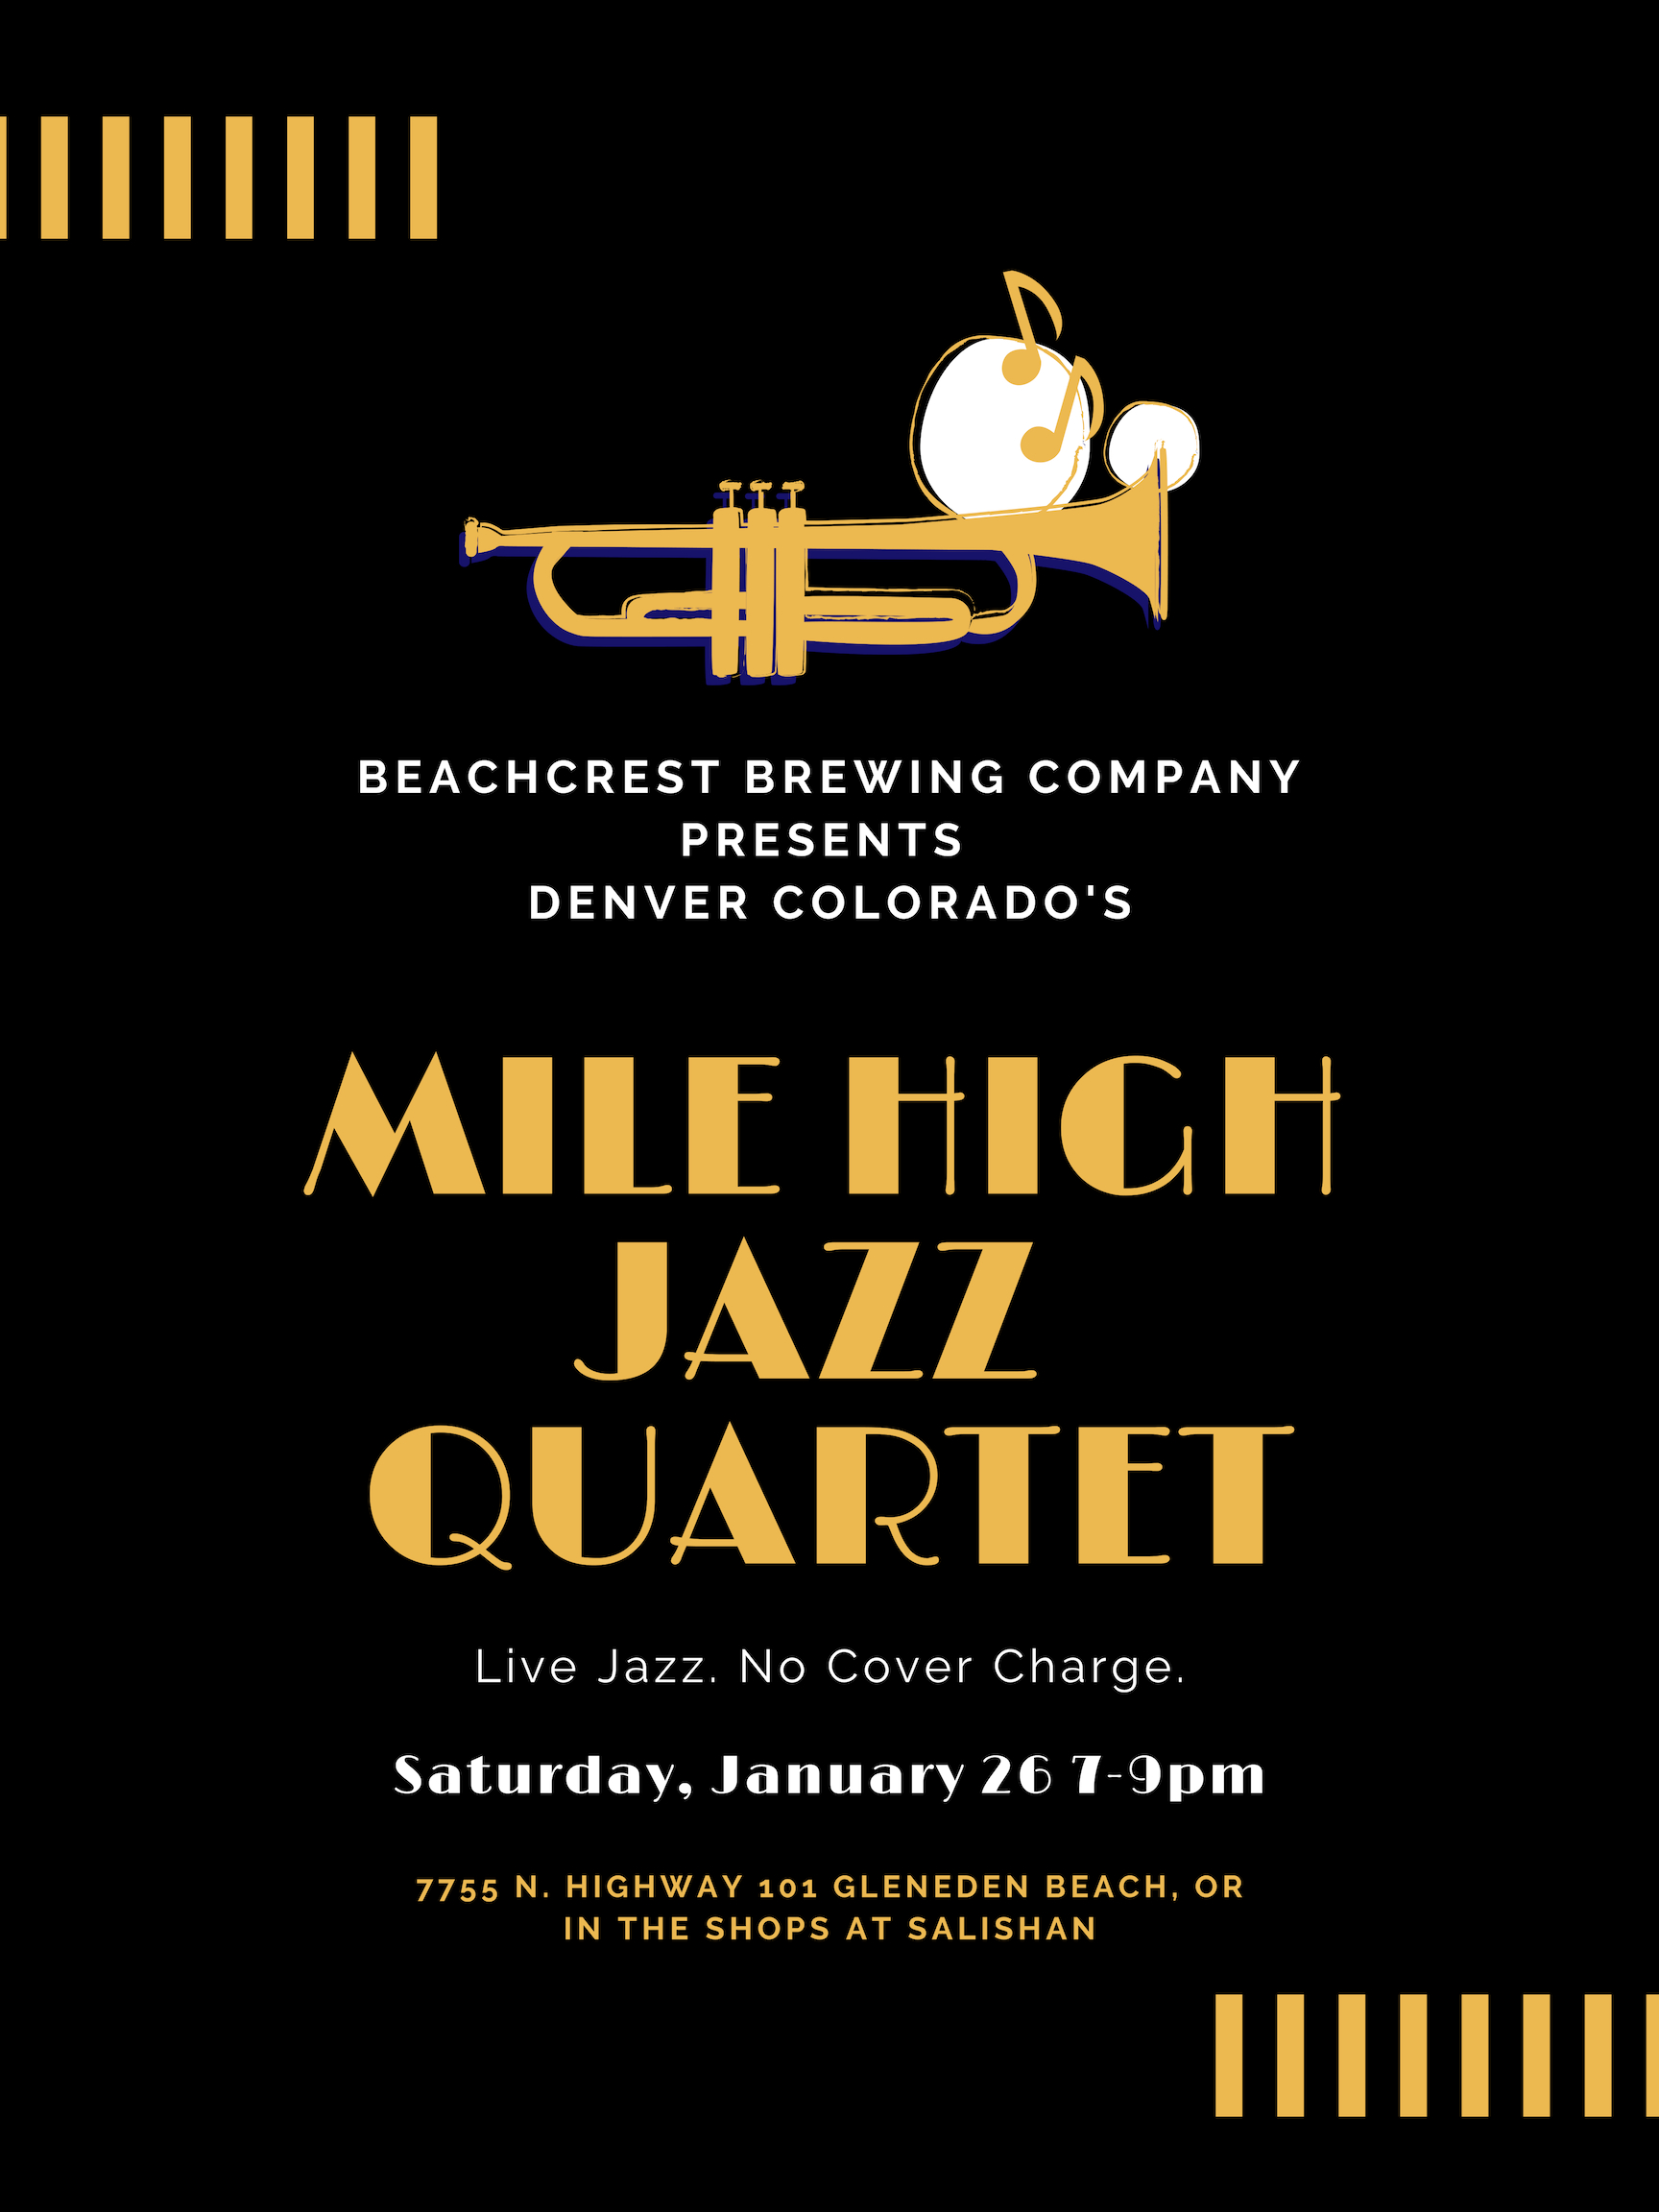 Mile High Jazz Quartet.jpg